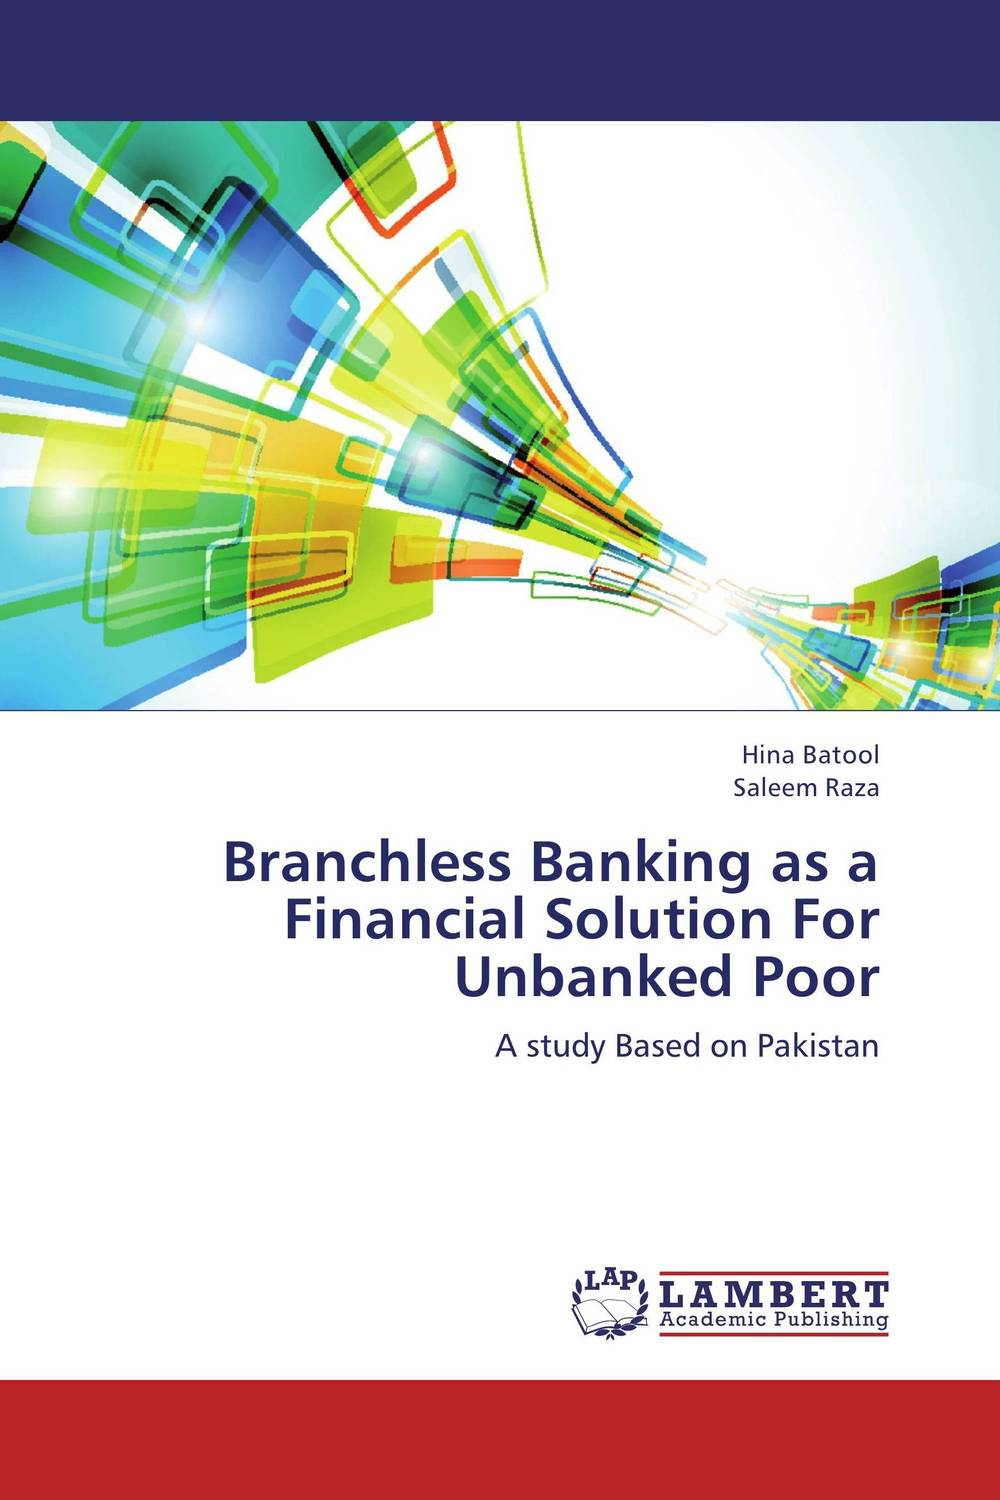 Branchless Banking as a Financial Solution For Unbanked Poor asif yaseen fostering innovations for banking the unbanked models